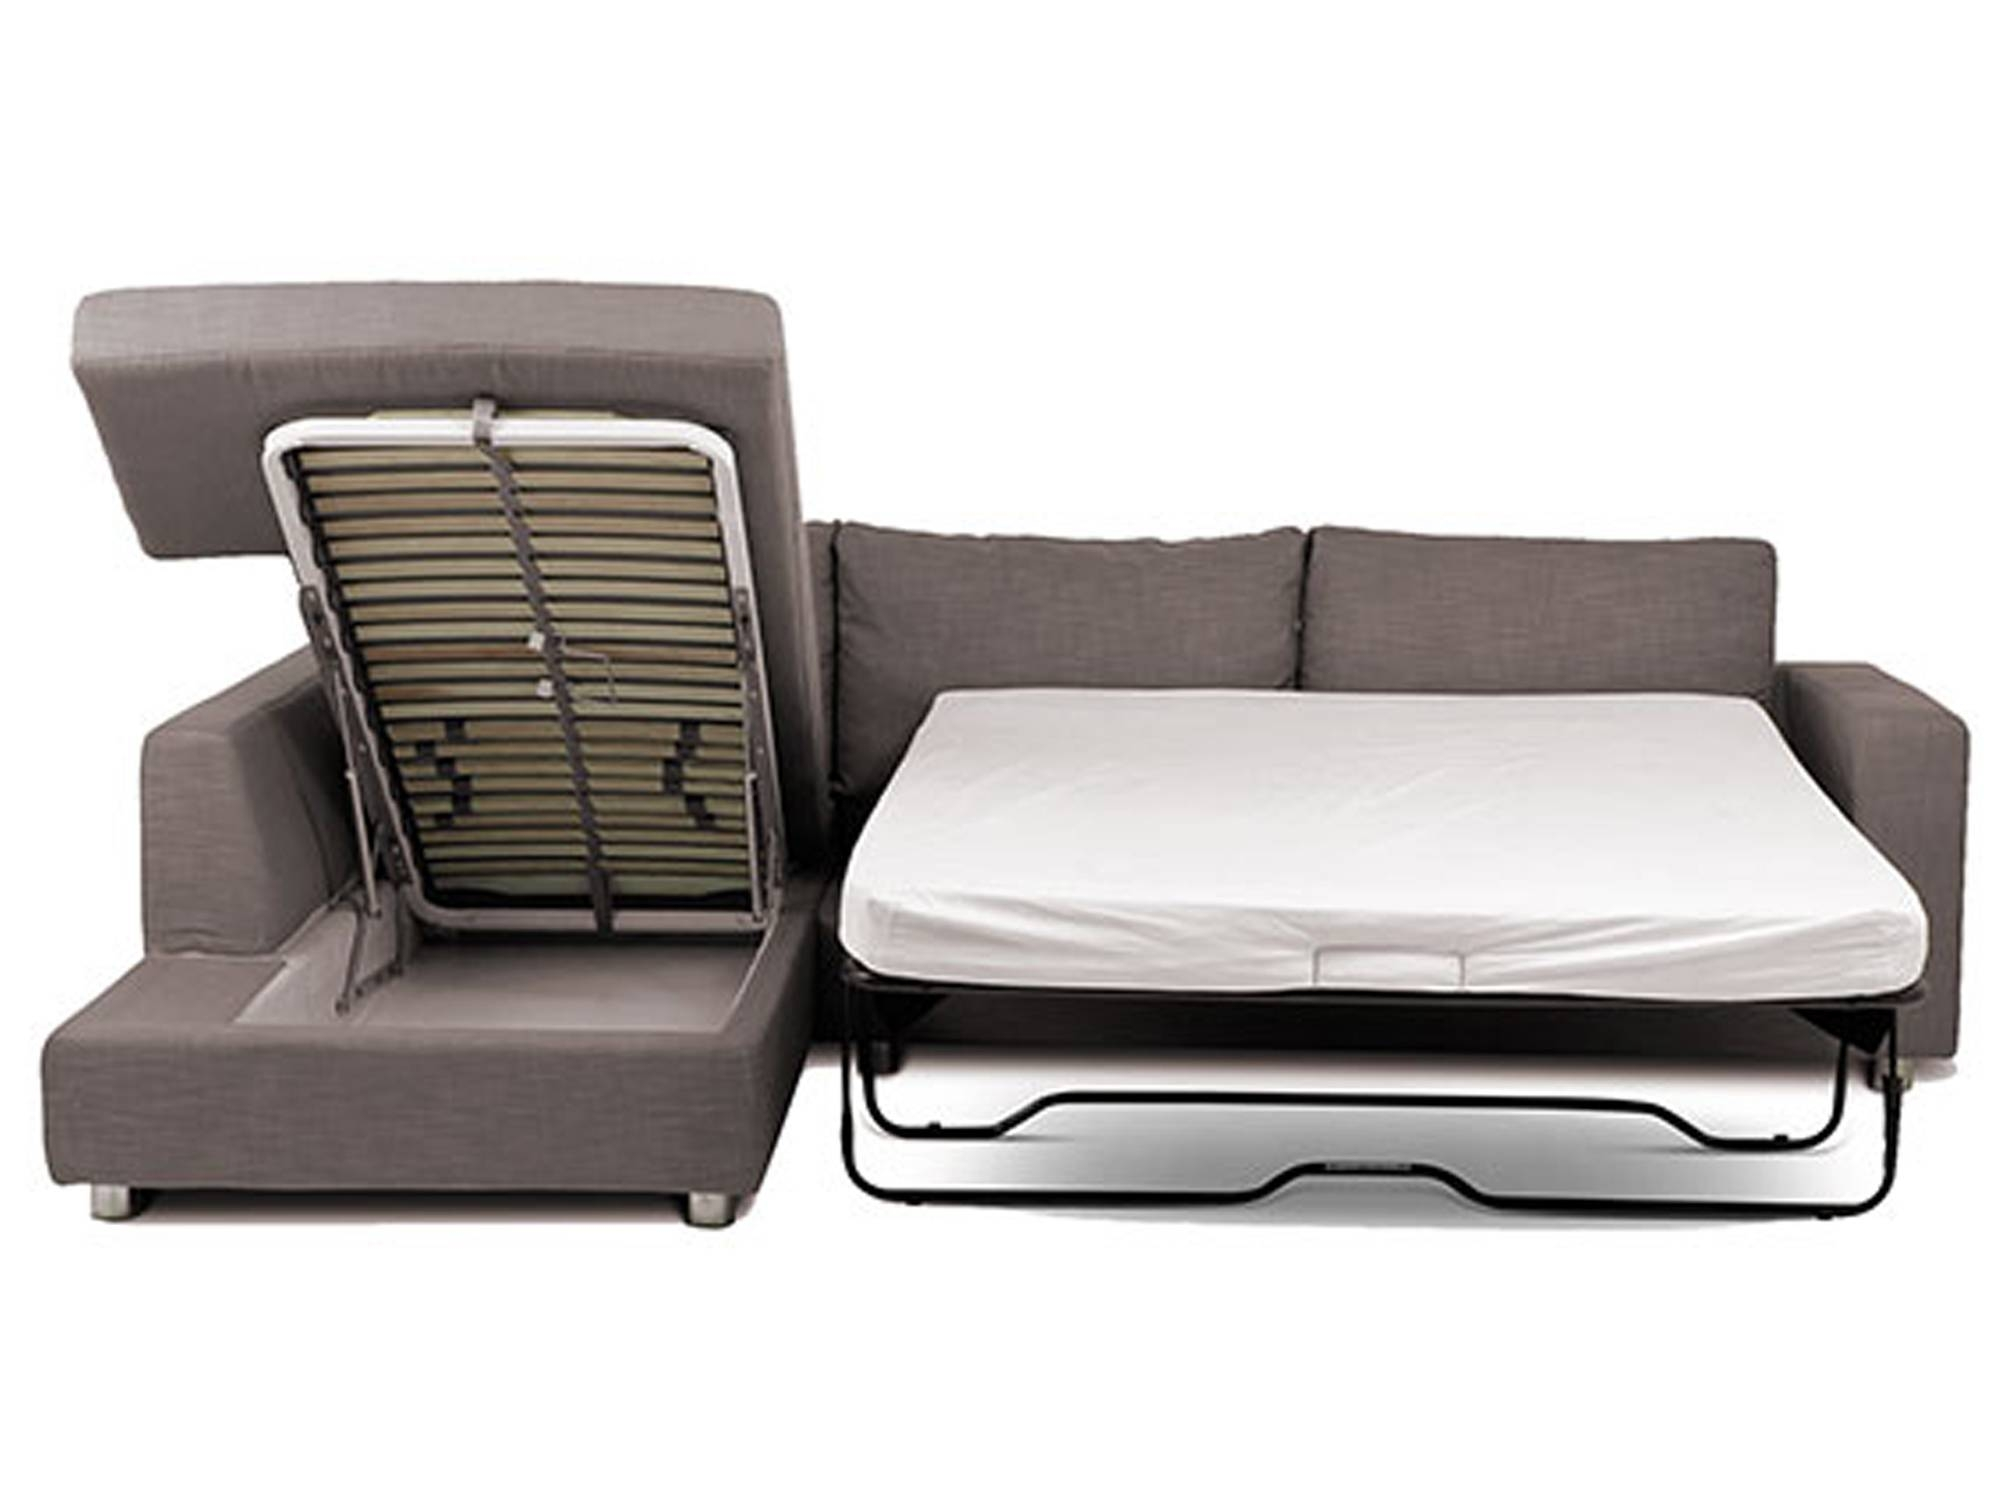 Sleeping Sofa With Storage | Tehranmix Decoration inside Sofas With Beds (Image 17 of 30)